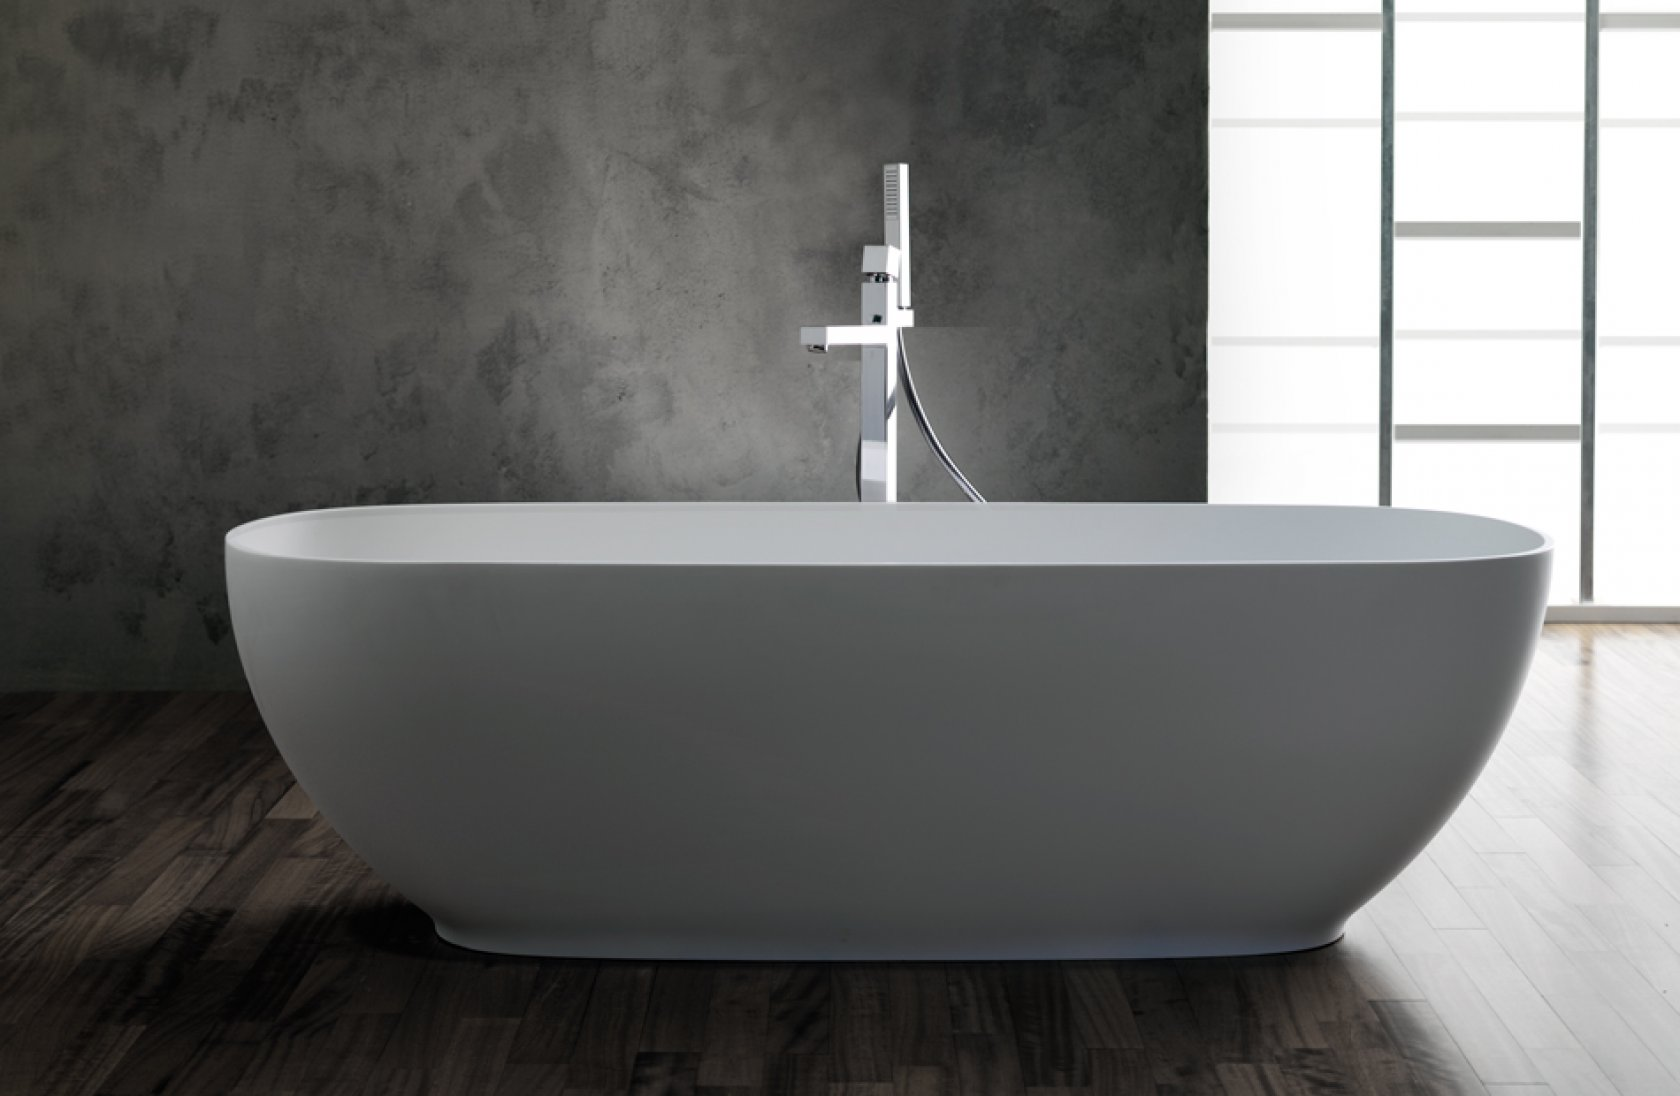 Vasca Da Bagno Ad Incasso 170x70 : Vasca da bagno ideal standard interesting with vasca da